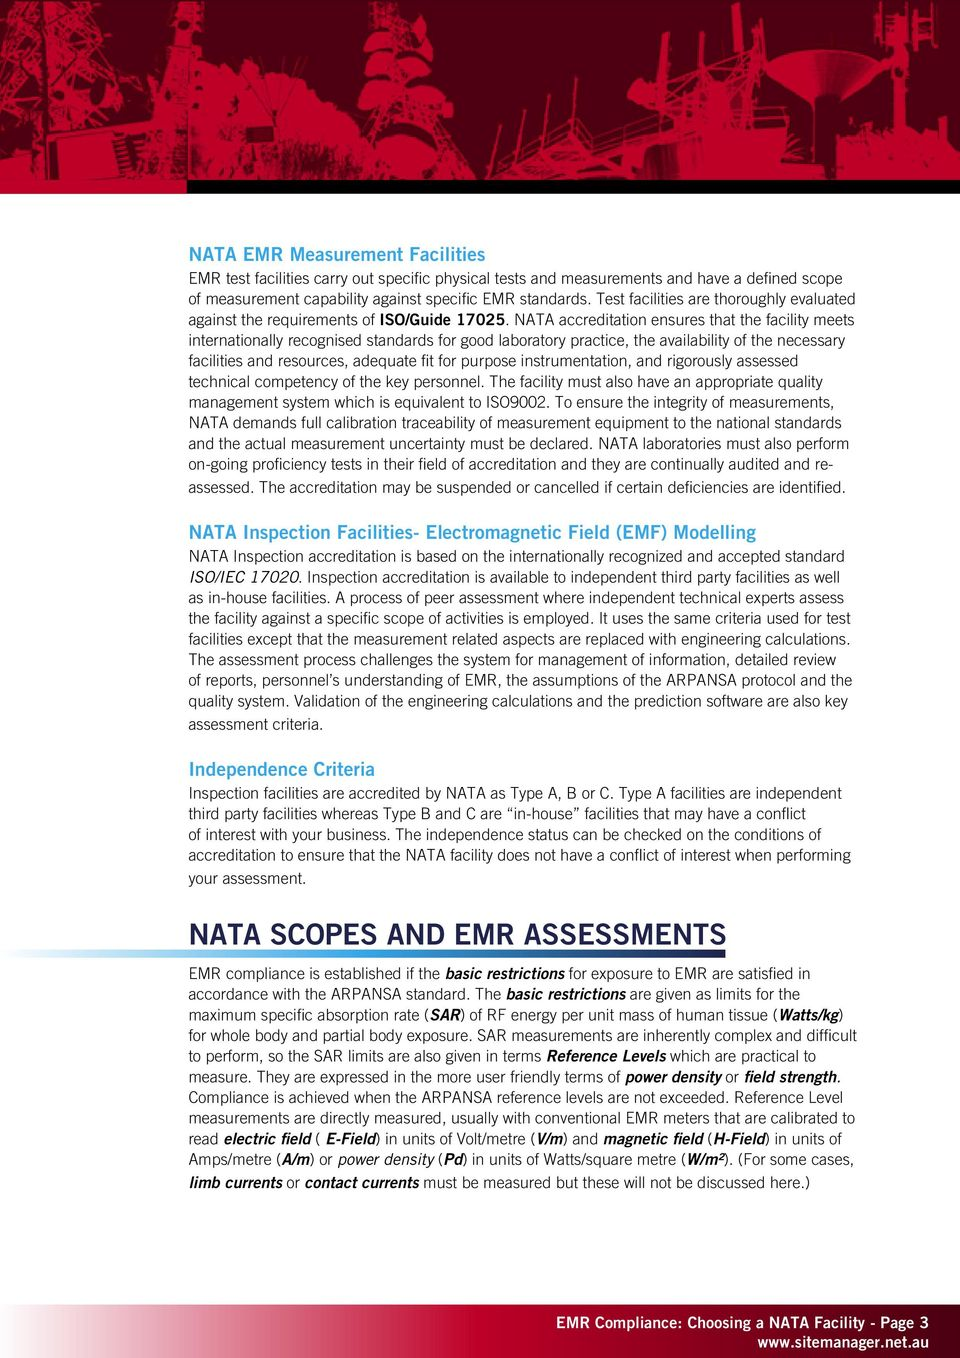 NATA accreditation ensures that the facility meets internationally recognised standards for good laboratory practice, the availability of the necessary facilities and resources, adequate fit for